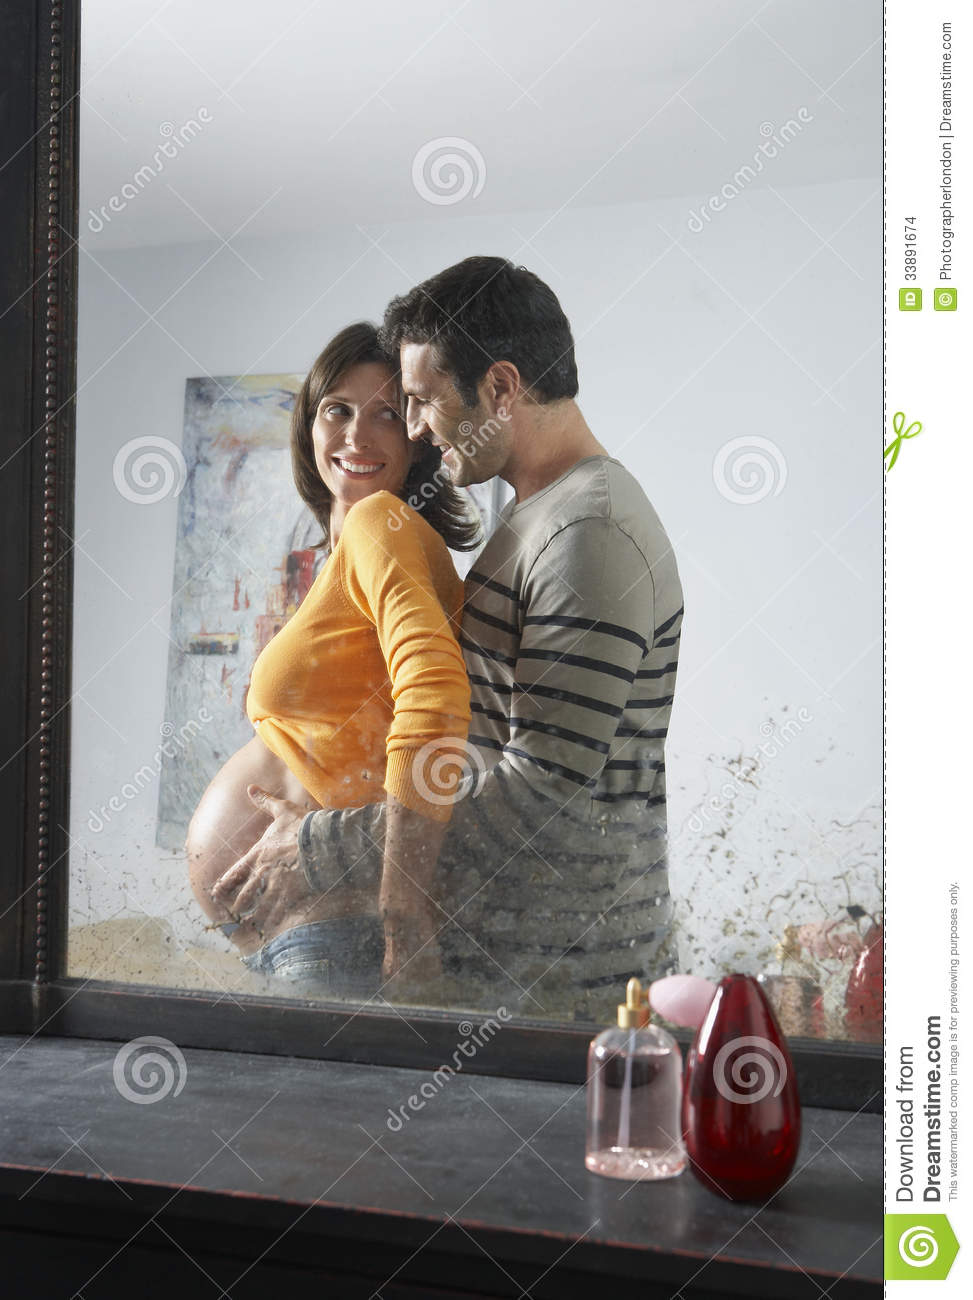 Reflection Of Man Embracing Pregnant Woman Stock Images ...